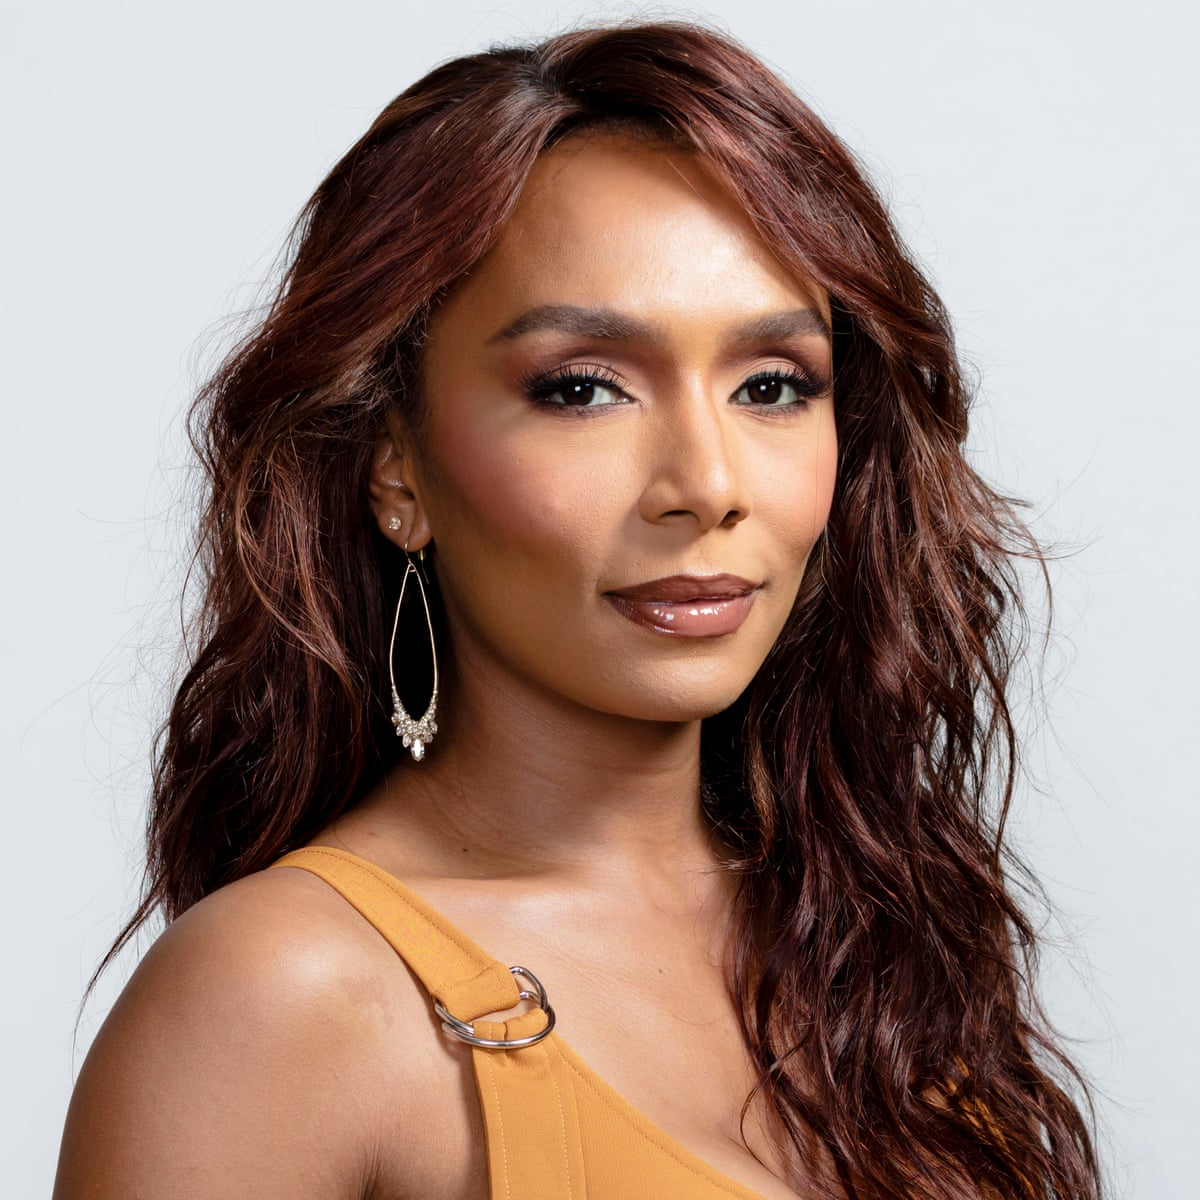 Old mom see big huge dick of young boy porn Janet Mock I D Never Seen A Young Trans Woman Who Was Thriving In The World I Was Looking For That Transgender The Guardian